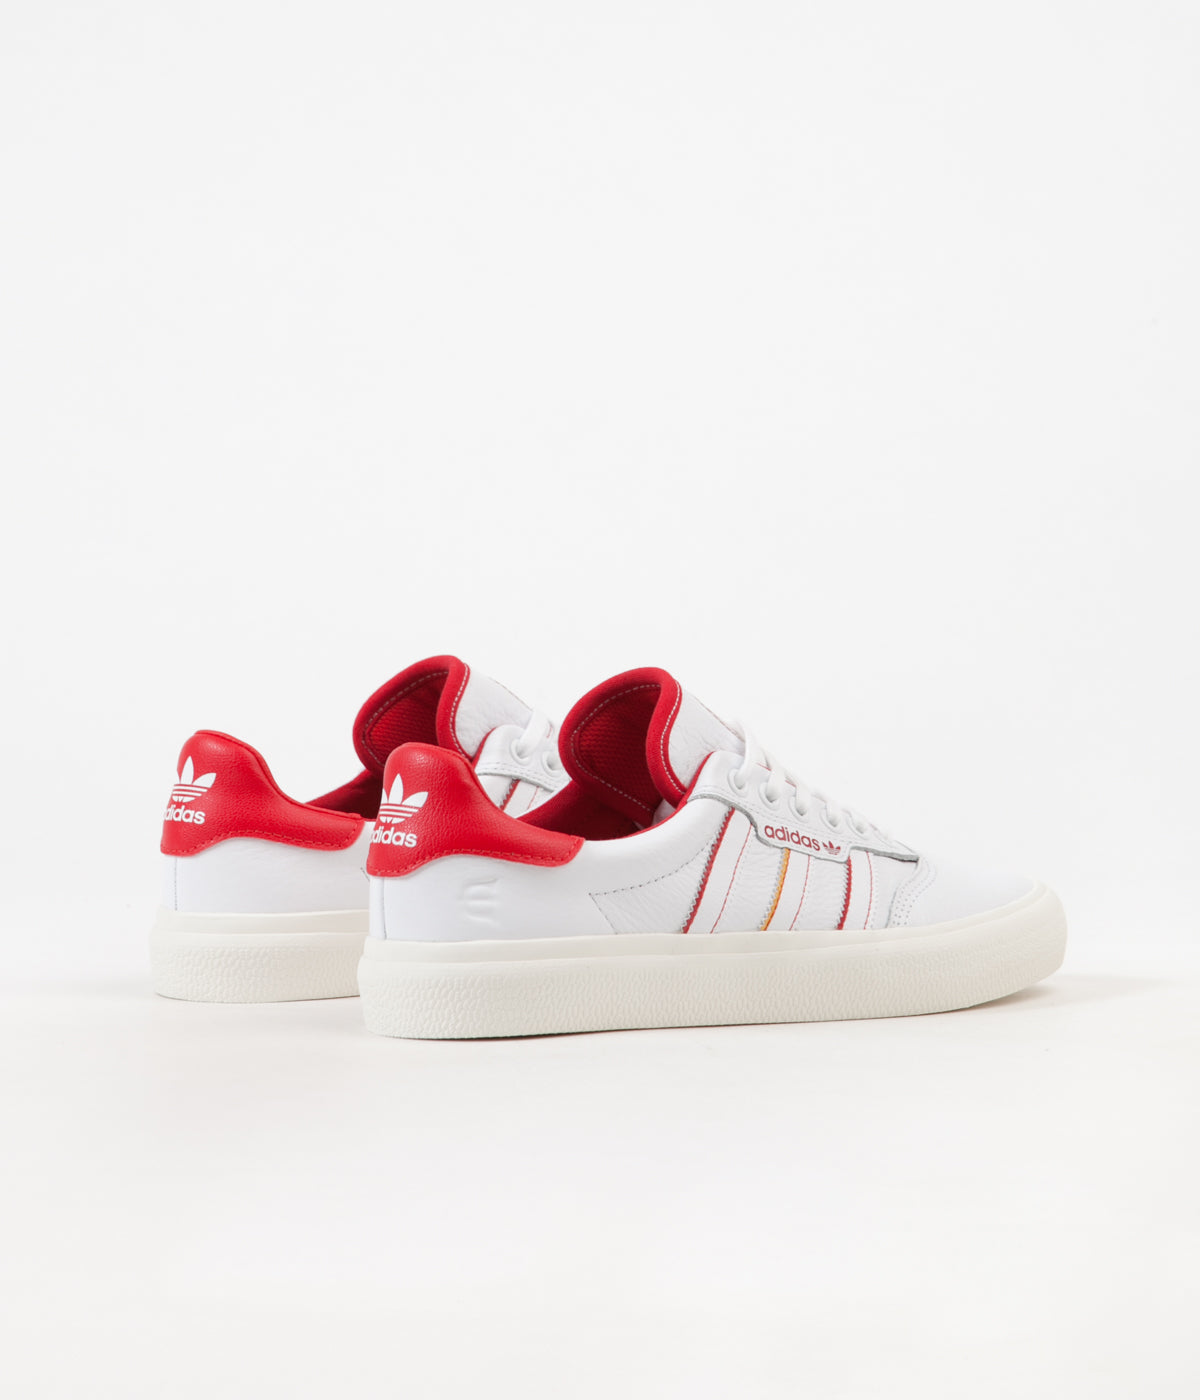 Estado trimestre Interesante  Adidas 3MC x Evisen Shoes - White / Scarlet / Gold Metallic | Flatspot